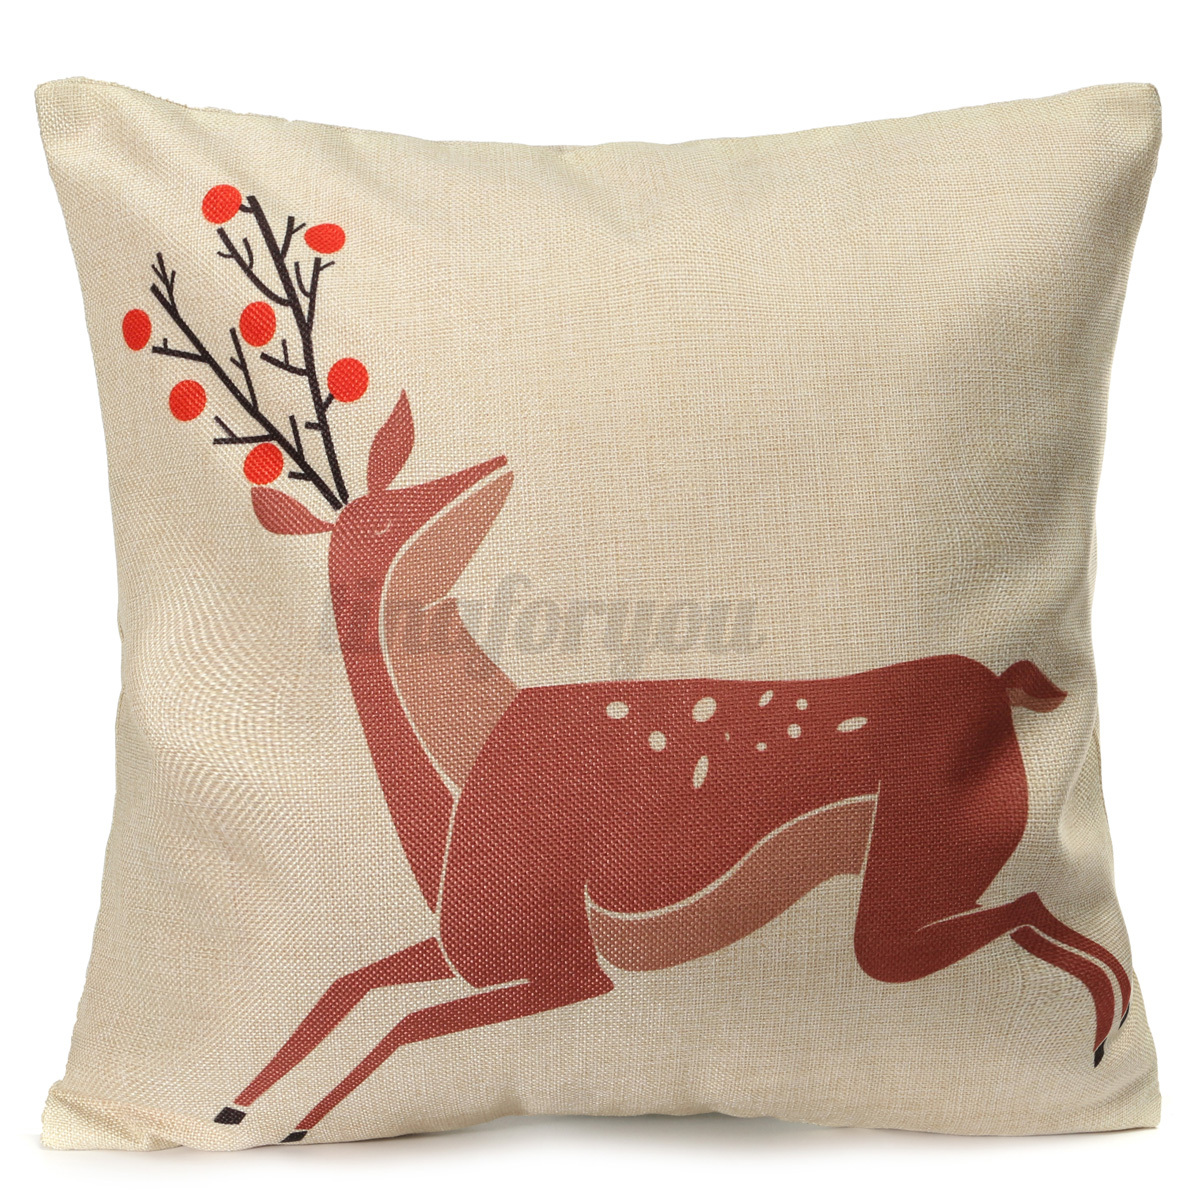 XMAS Christmas Cushion Cover Ambience Decorative Square Pillow Case Car Decor eBay